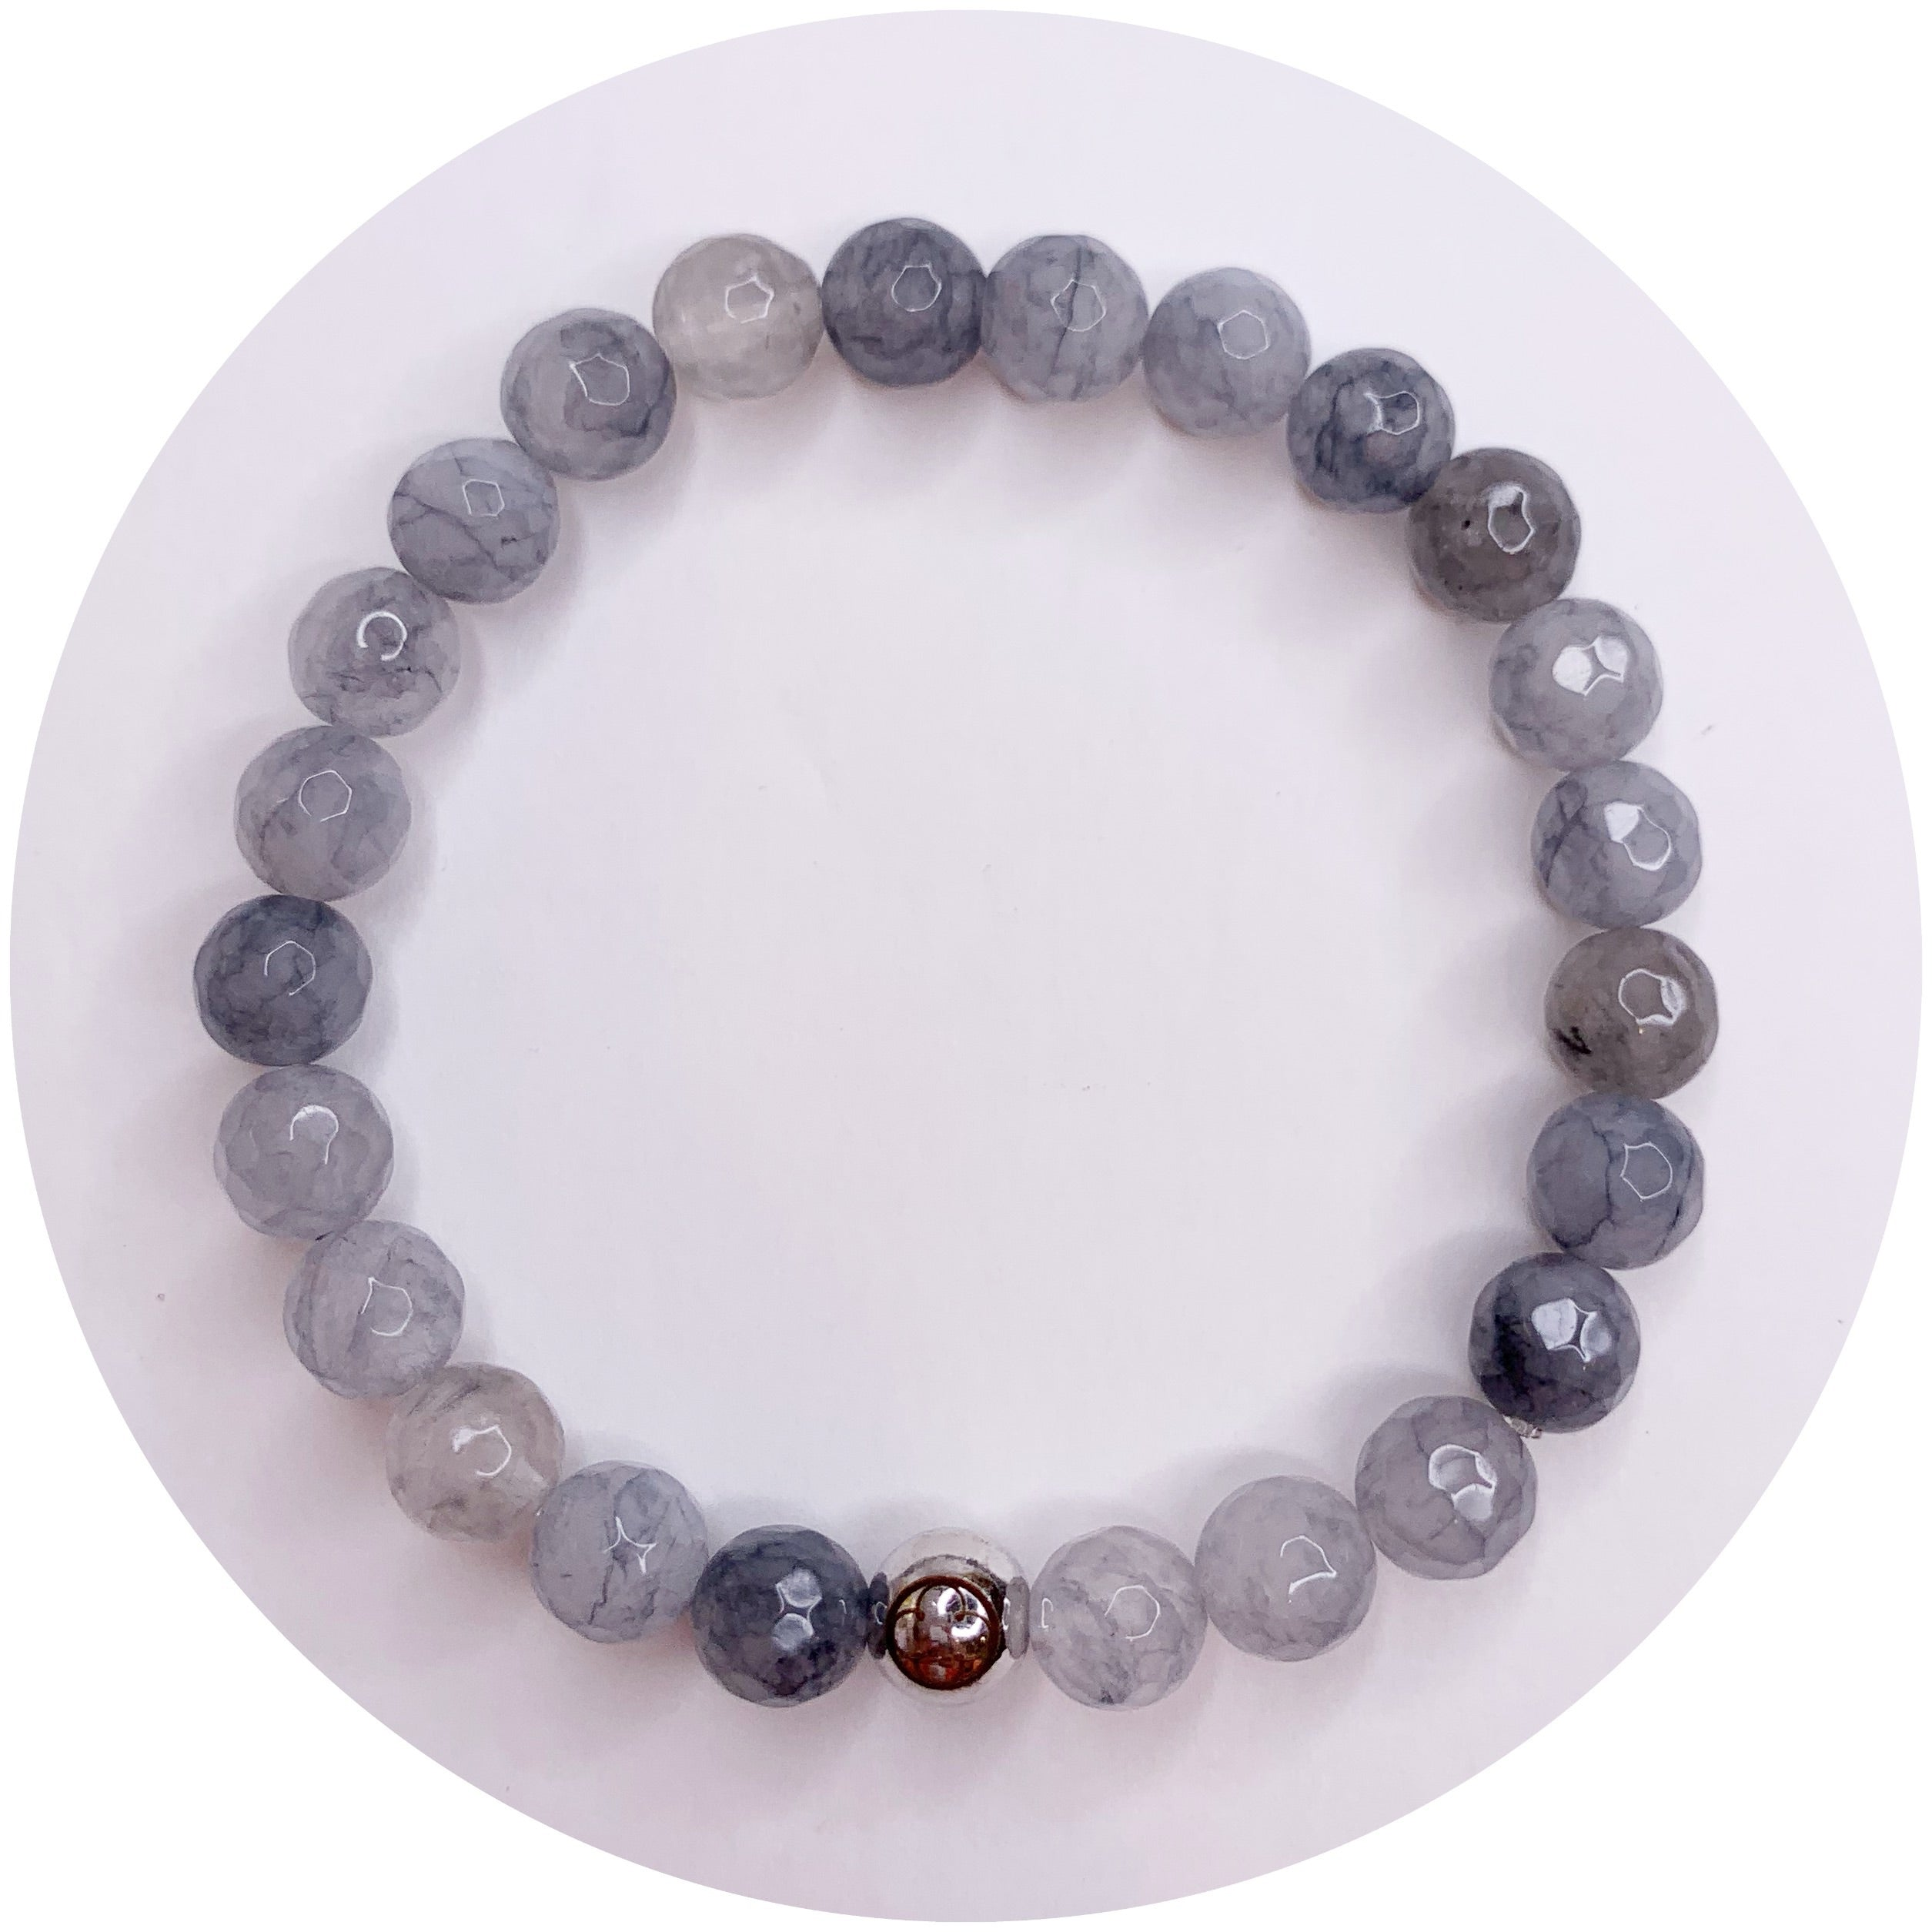 Mens Grey Quartz with Silver Accent - Oriana Lamarca LLC